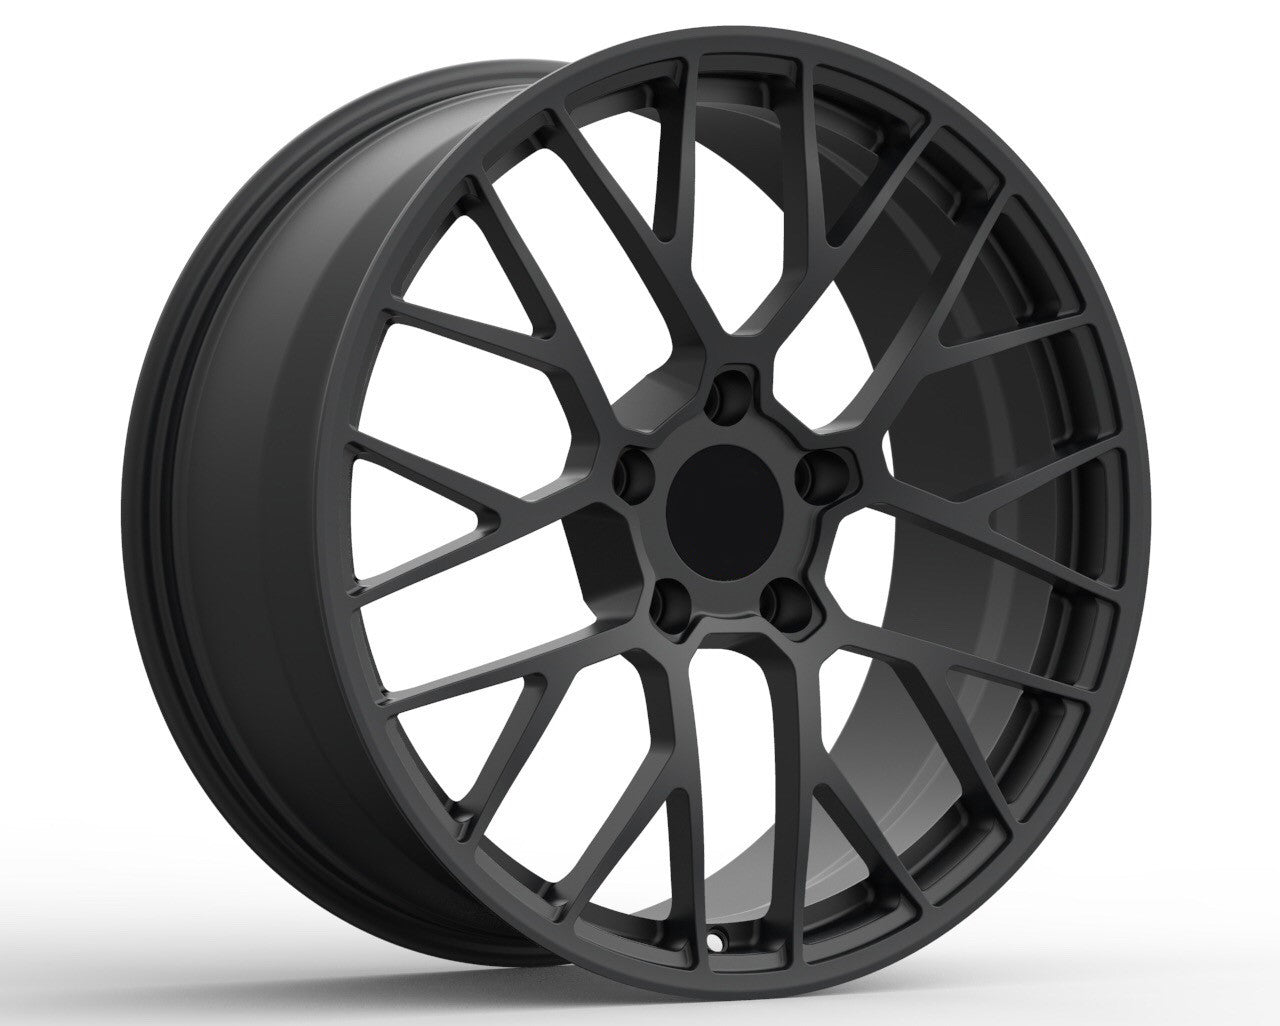 PN 223 - Aftermarket Custom Made Fully Forged Wheels Set To Fit Porsche 911 997 991 992 718